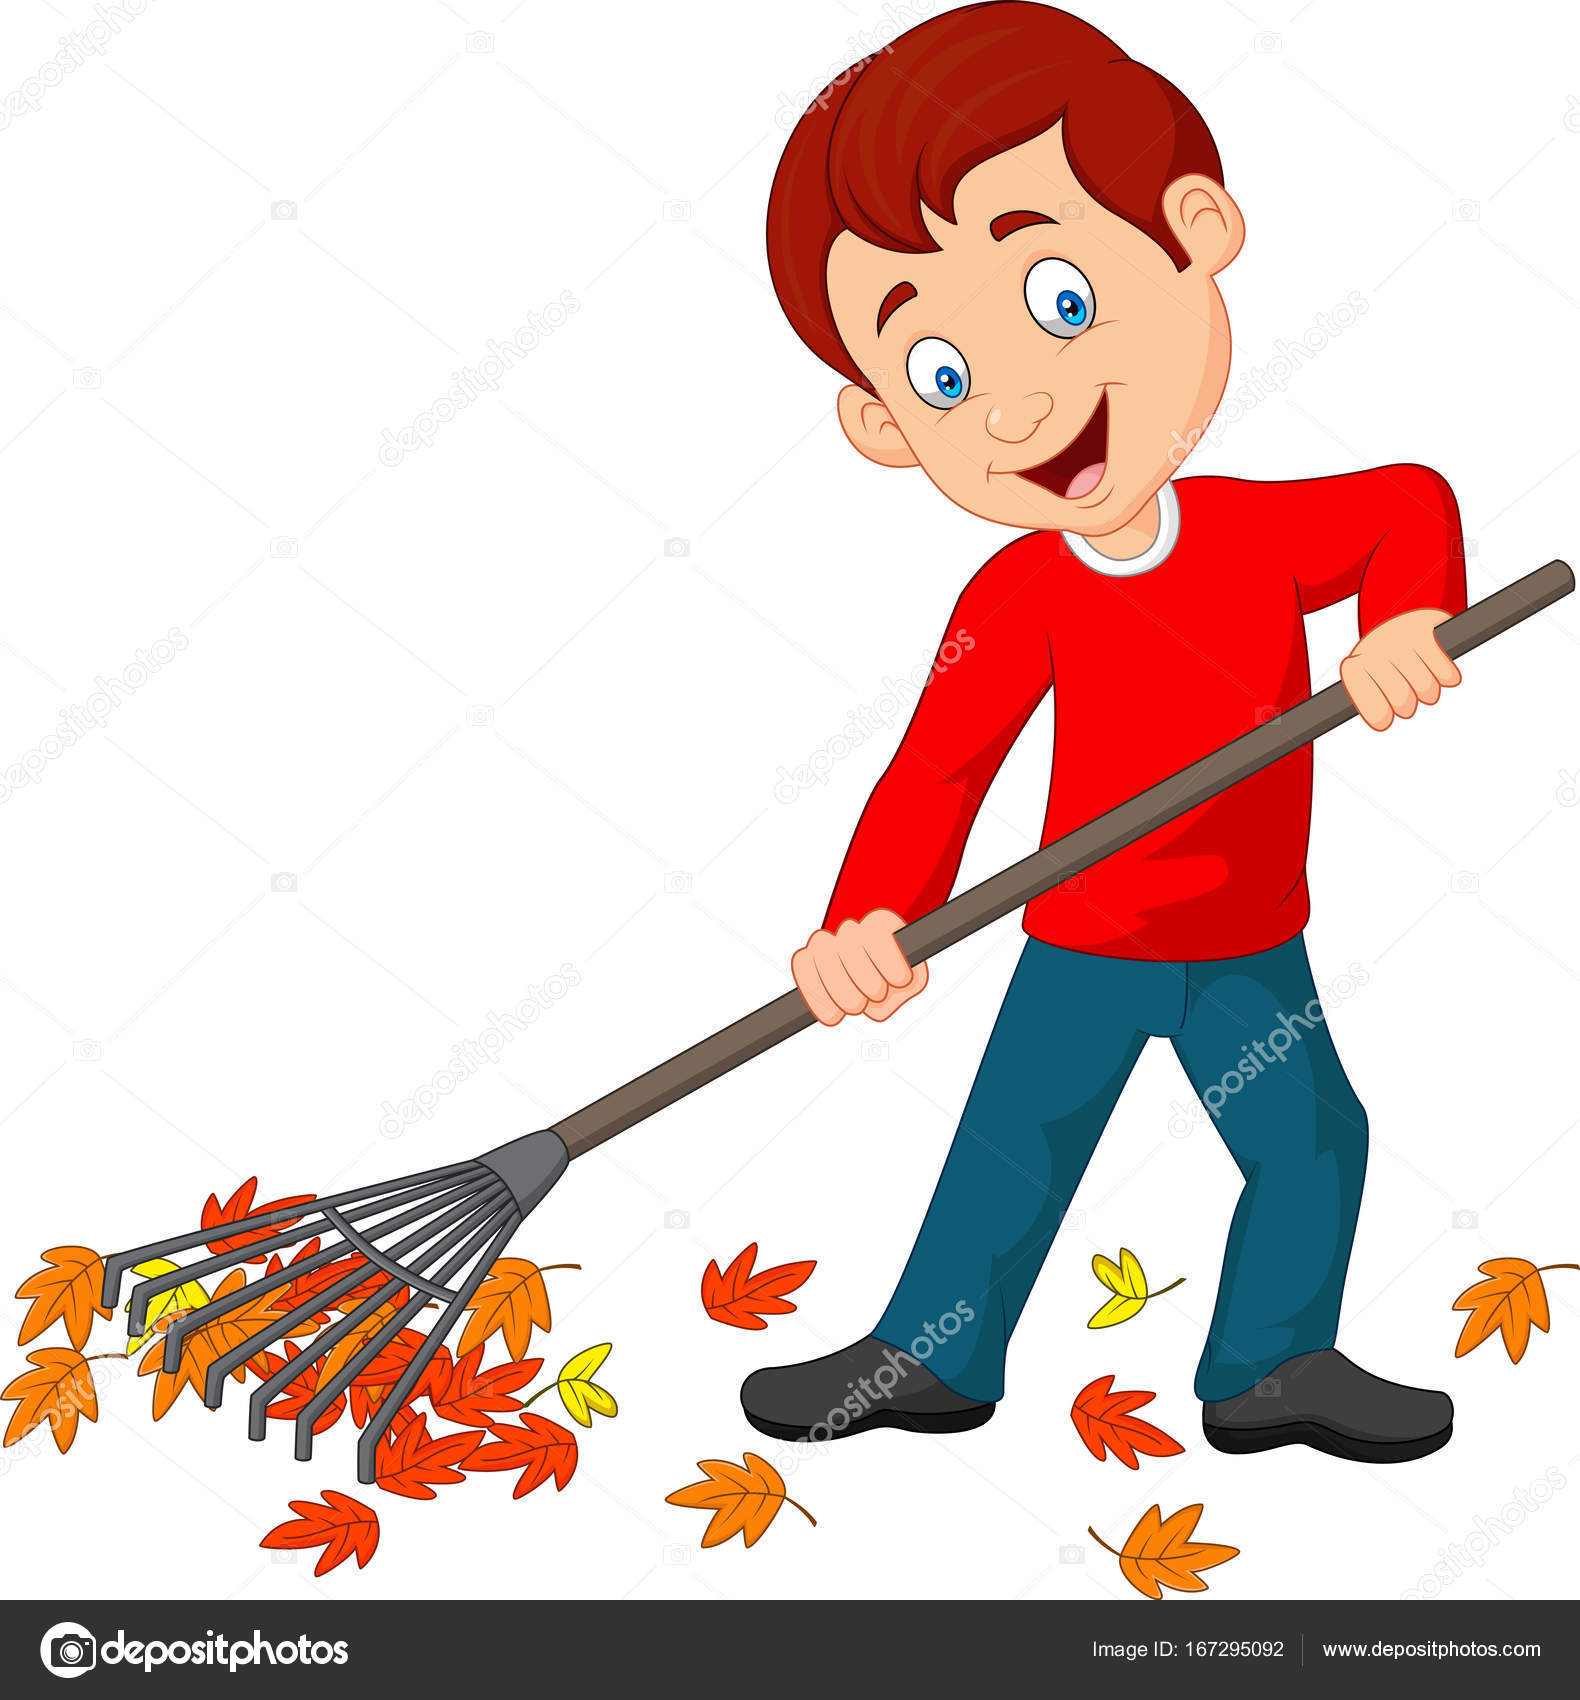 raking leaves clipart cliparts galleries girl raking leaves clipart leaf raking clipart